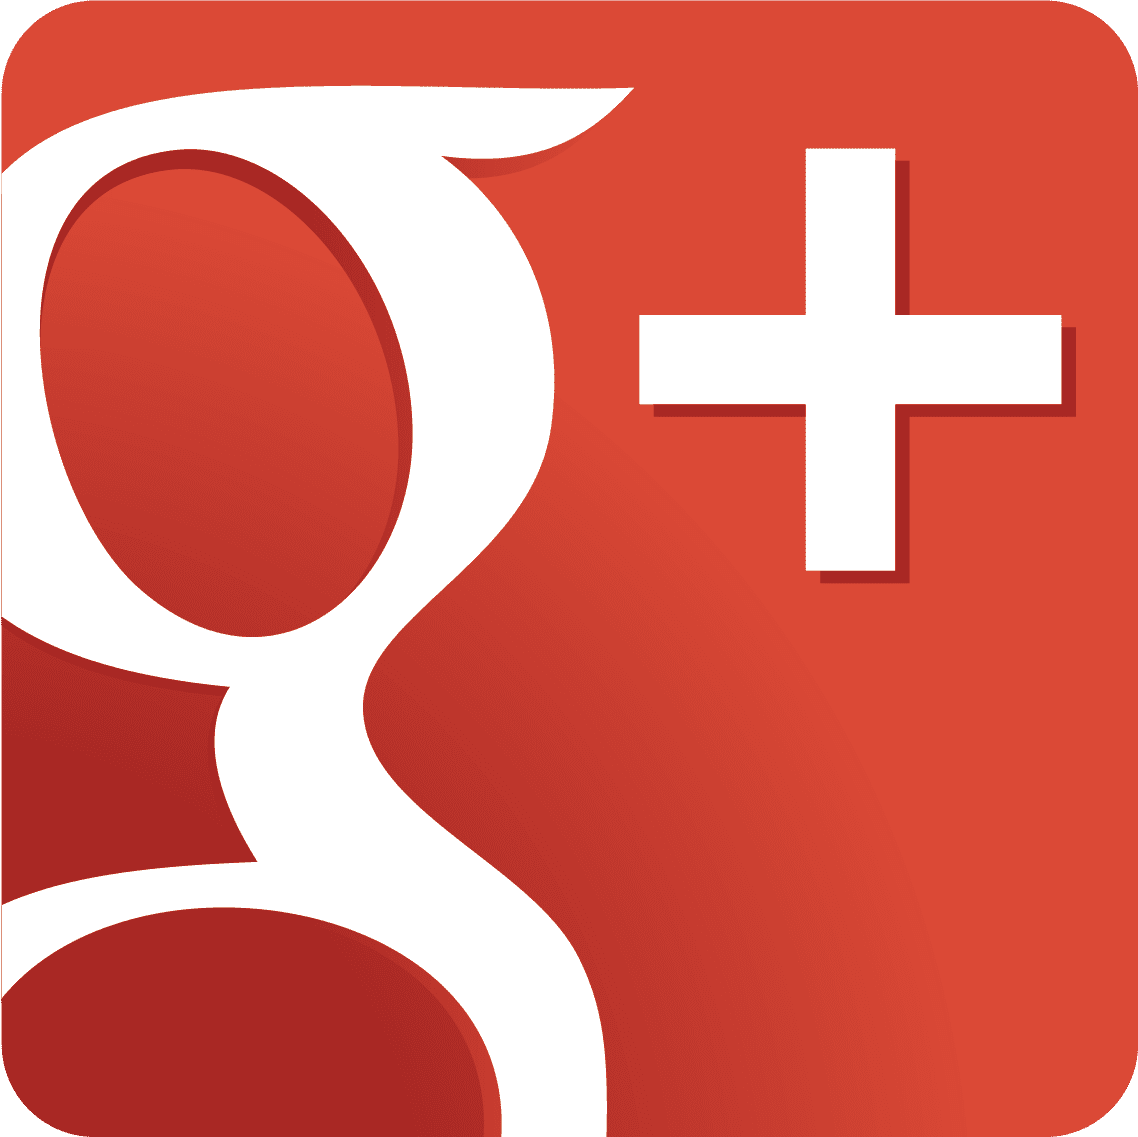 Chris' Google+